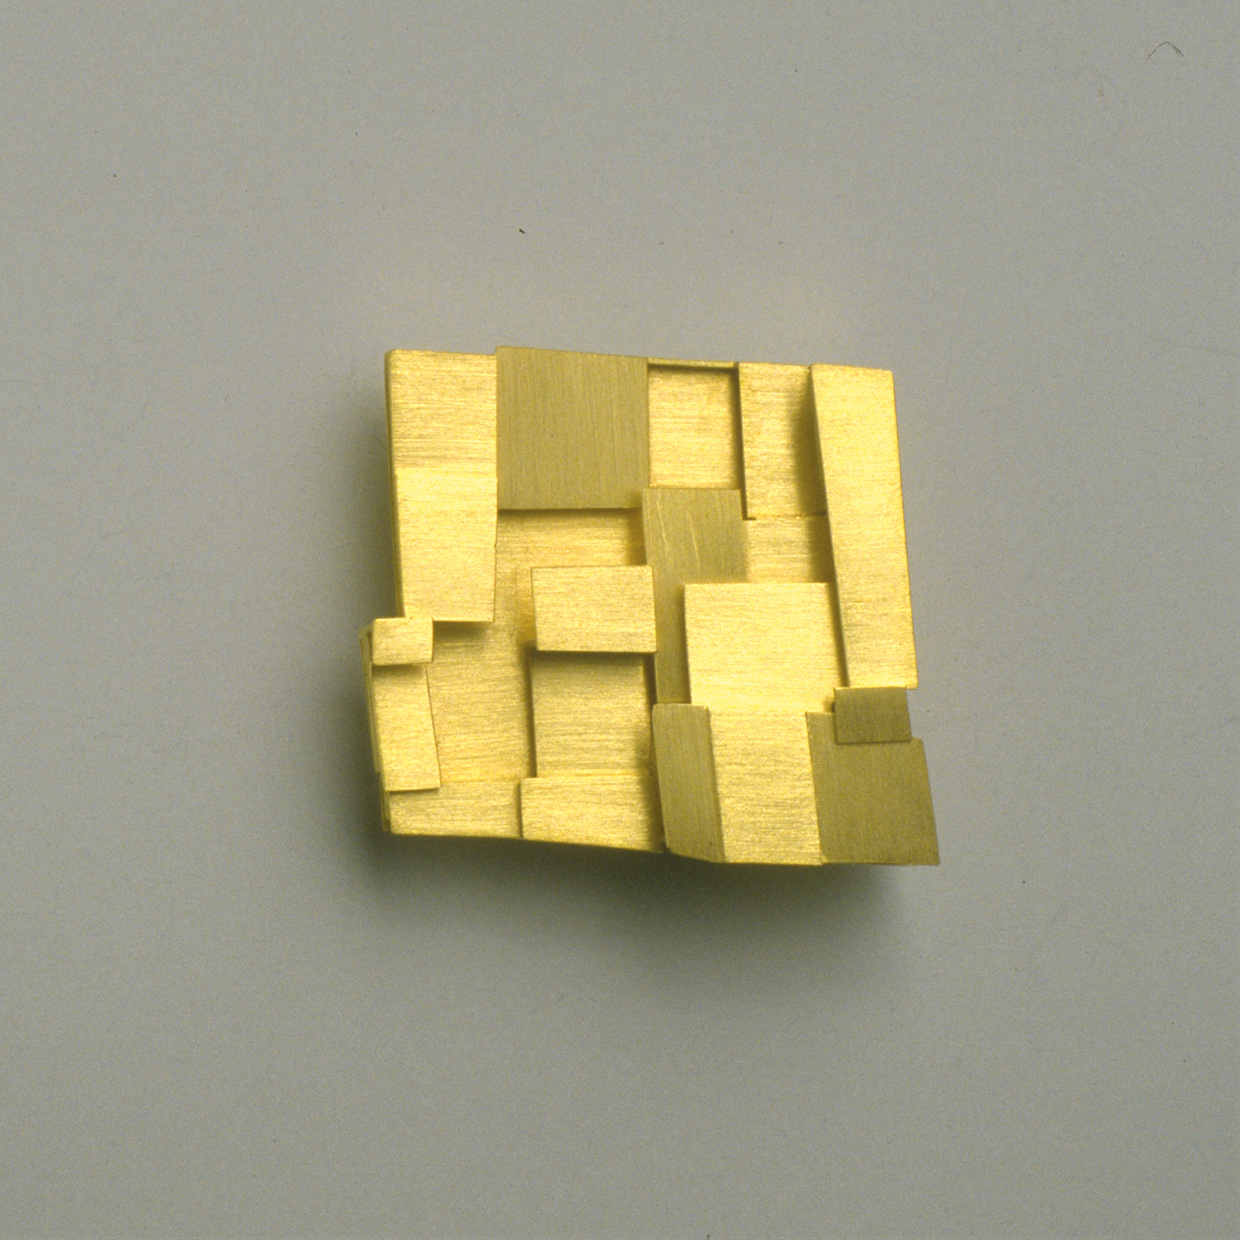 brooch  1993  gold  750  32x30  mm